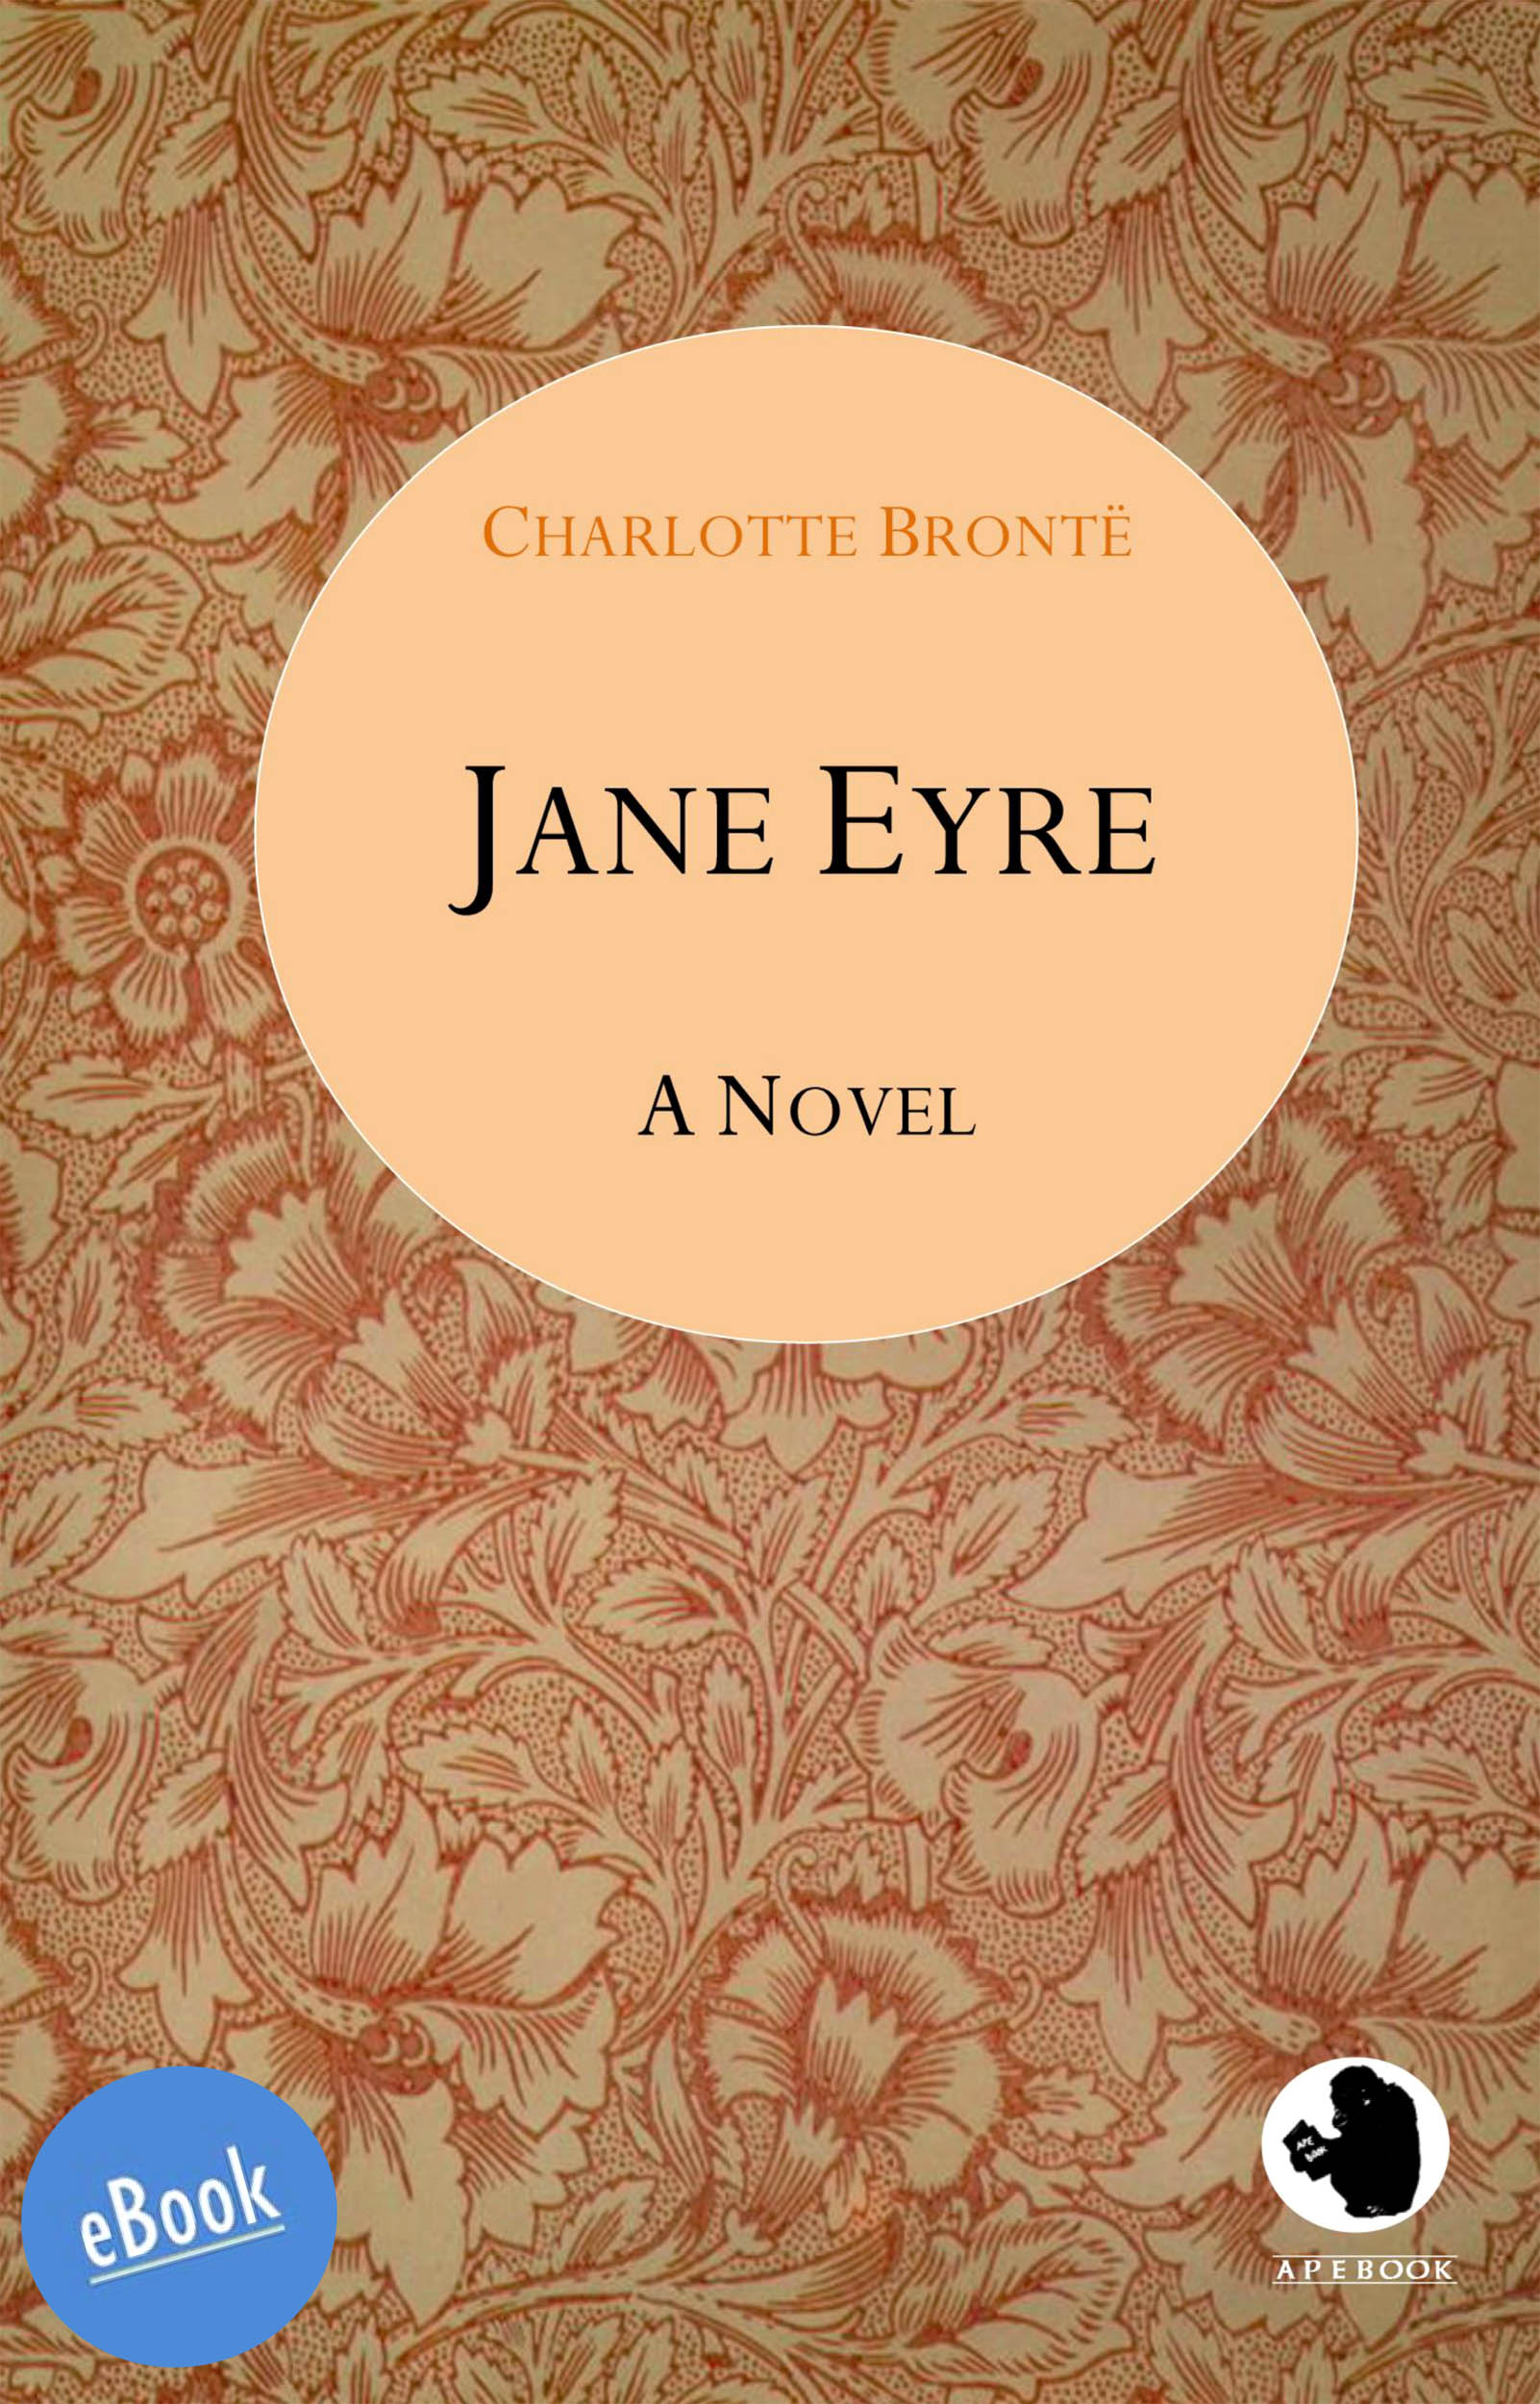 the supernatural elements in jane eyre a novel by charlotte bronte Jane eyre is divided into 38 chapters and most editions are at least 400 pages long the original publication was in three volumes, comprising chapters 1 to 15, 16 to 26, and 27 to 38 this was a common publishing format during the 19th century (see three-volume novel.